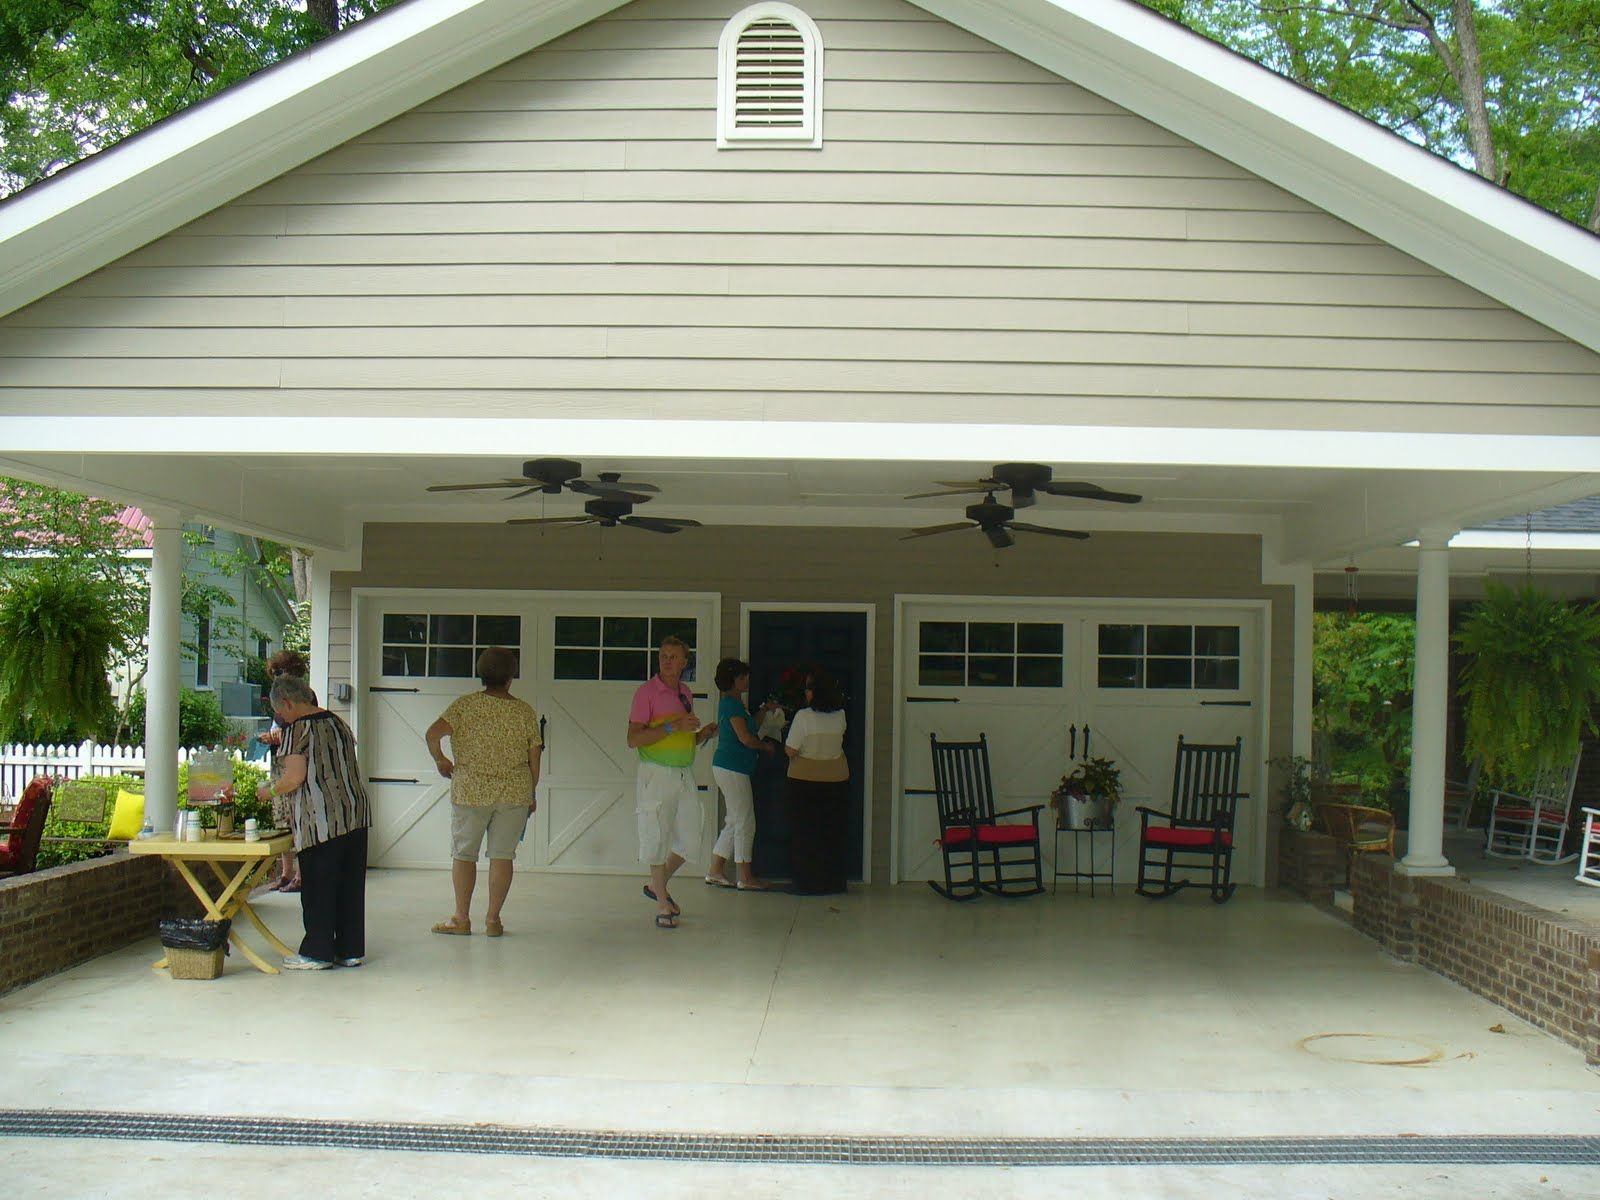 Awesome detached garage plans ideas remodel and photos for Garage plans with carport